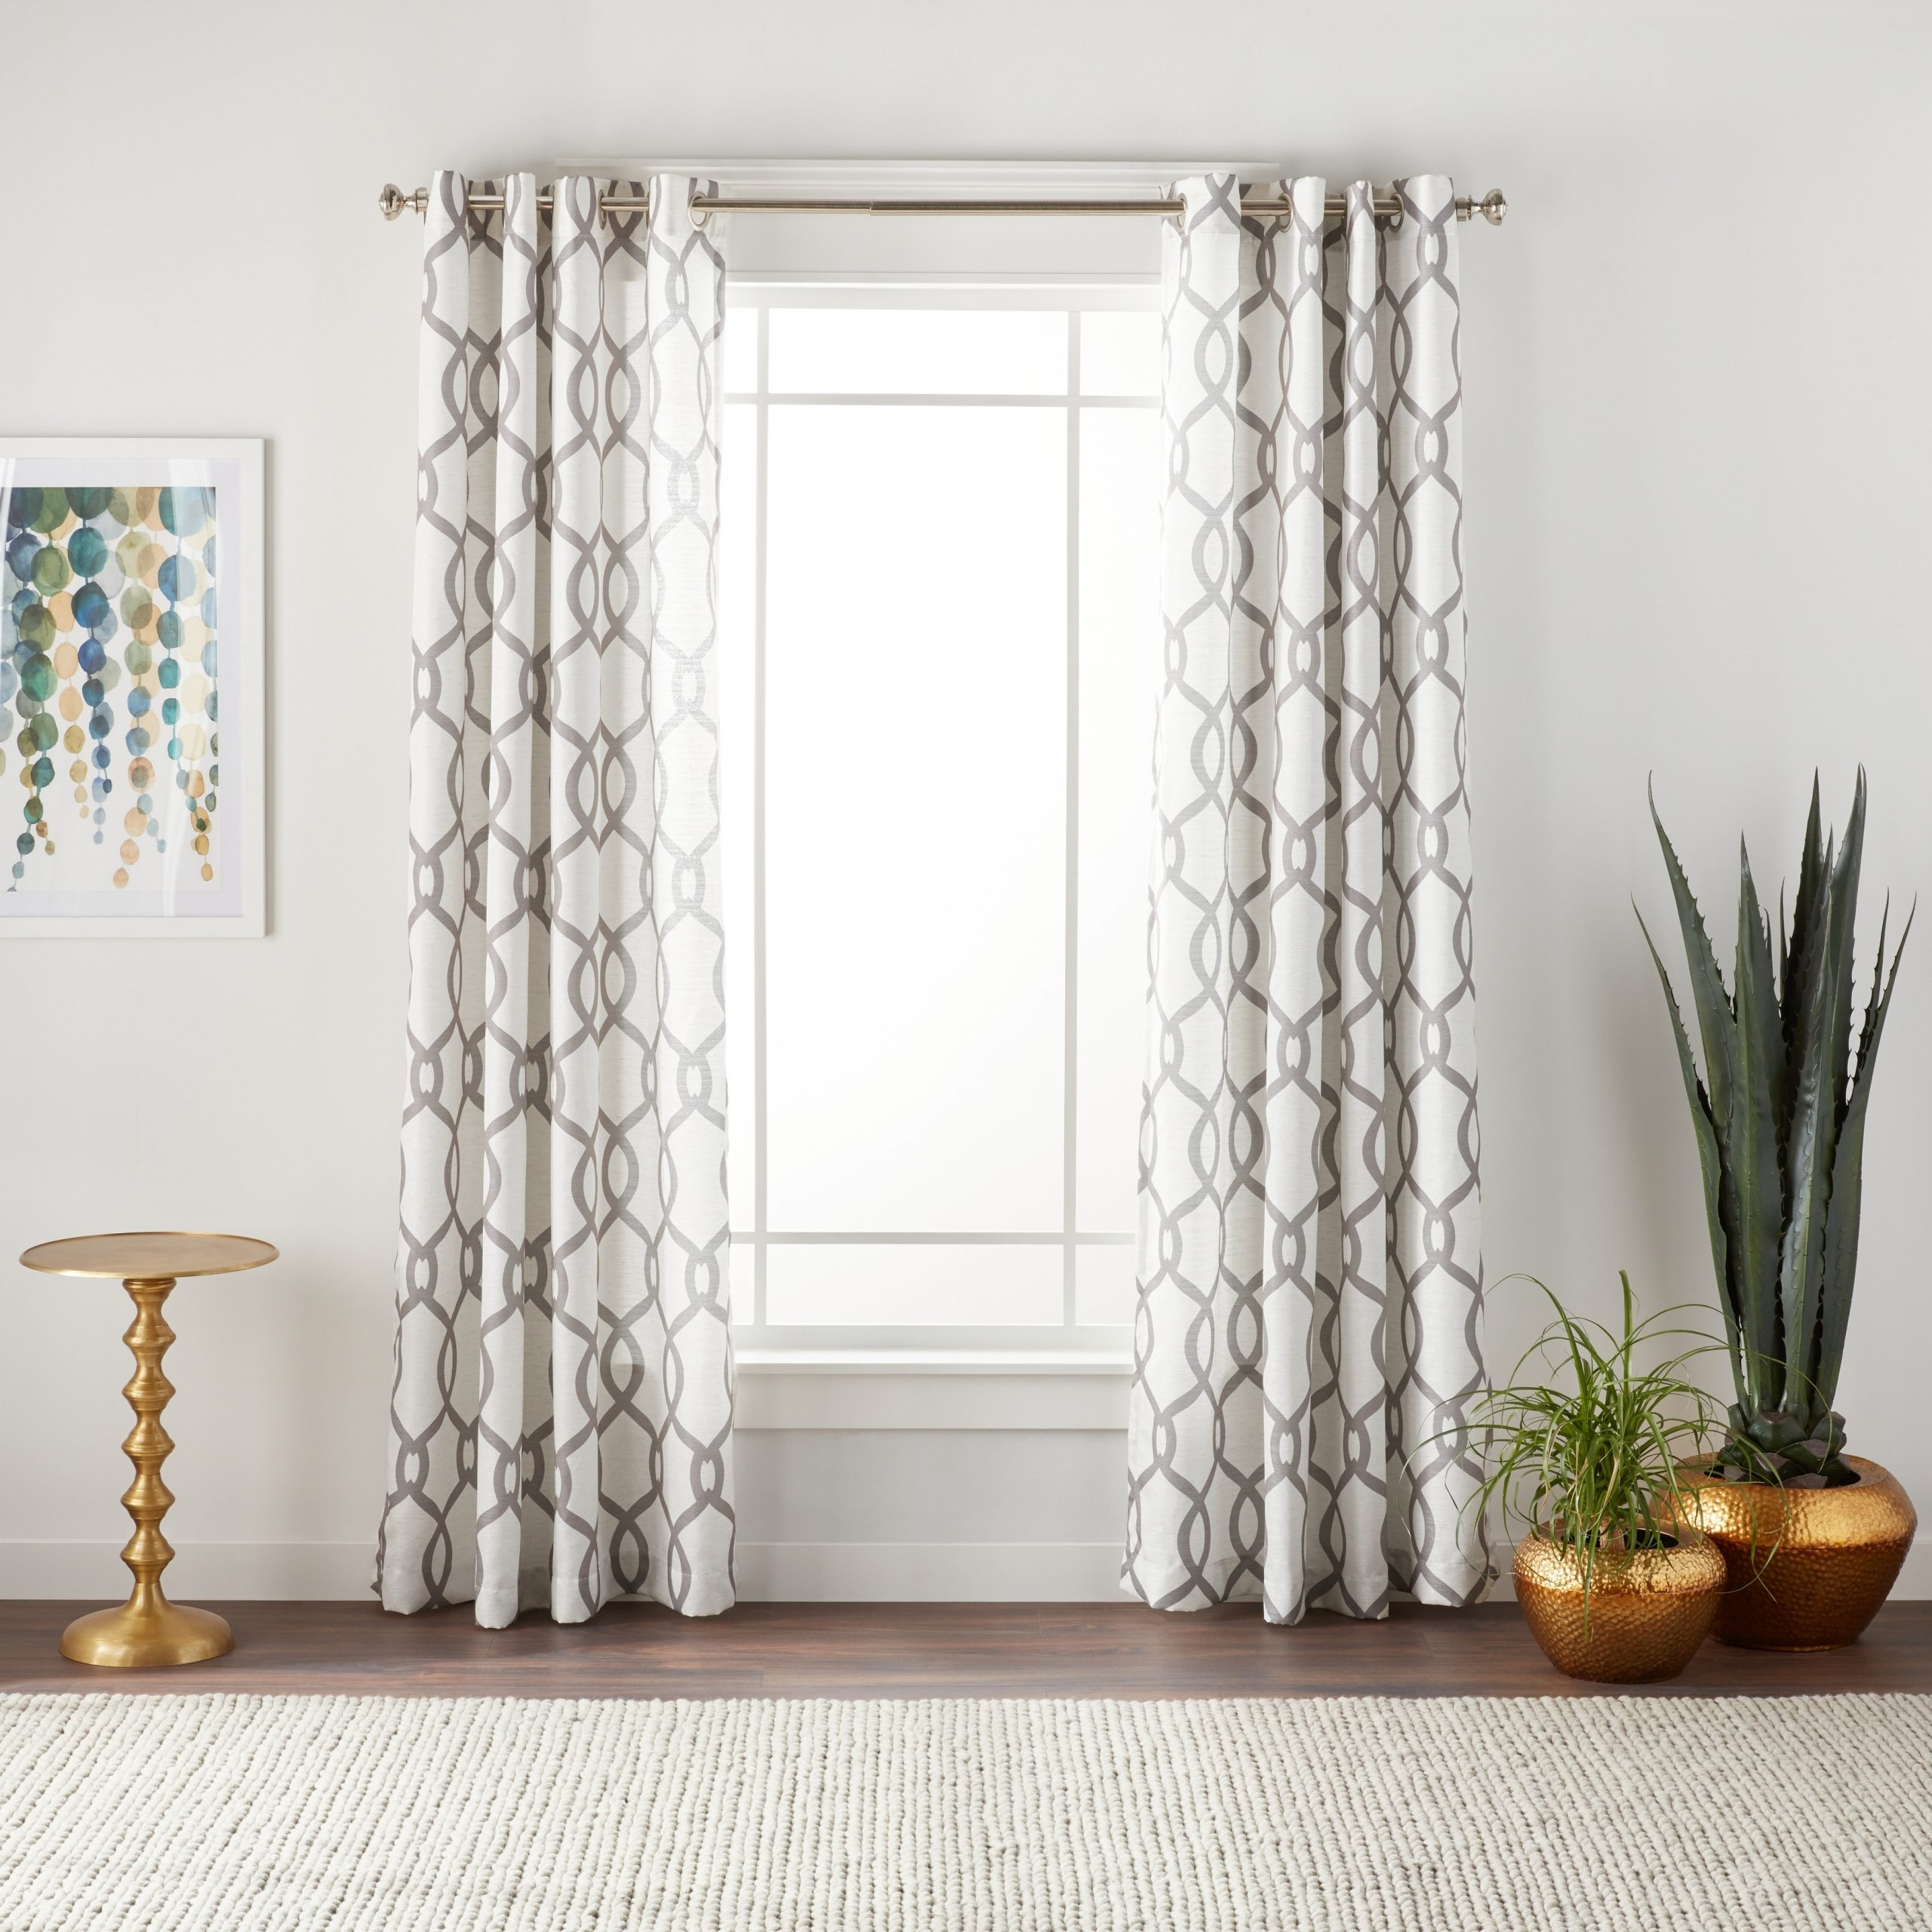 Newest Ati Home Kochi Linen Blend Window Curtain Panel Pair With Pertaining To Kochi Linen Blend Window Grommet Top Curtain Panel Pairs (View 10 of 20)